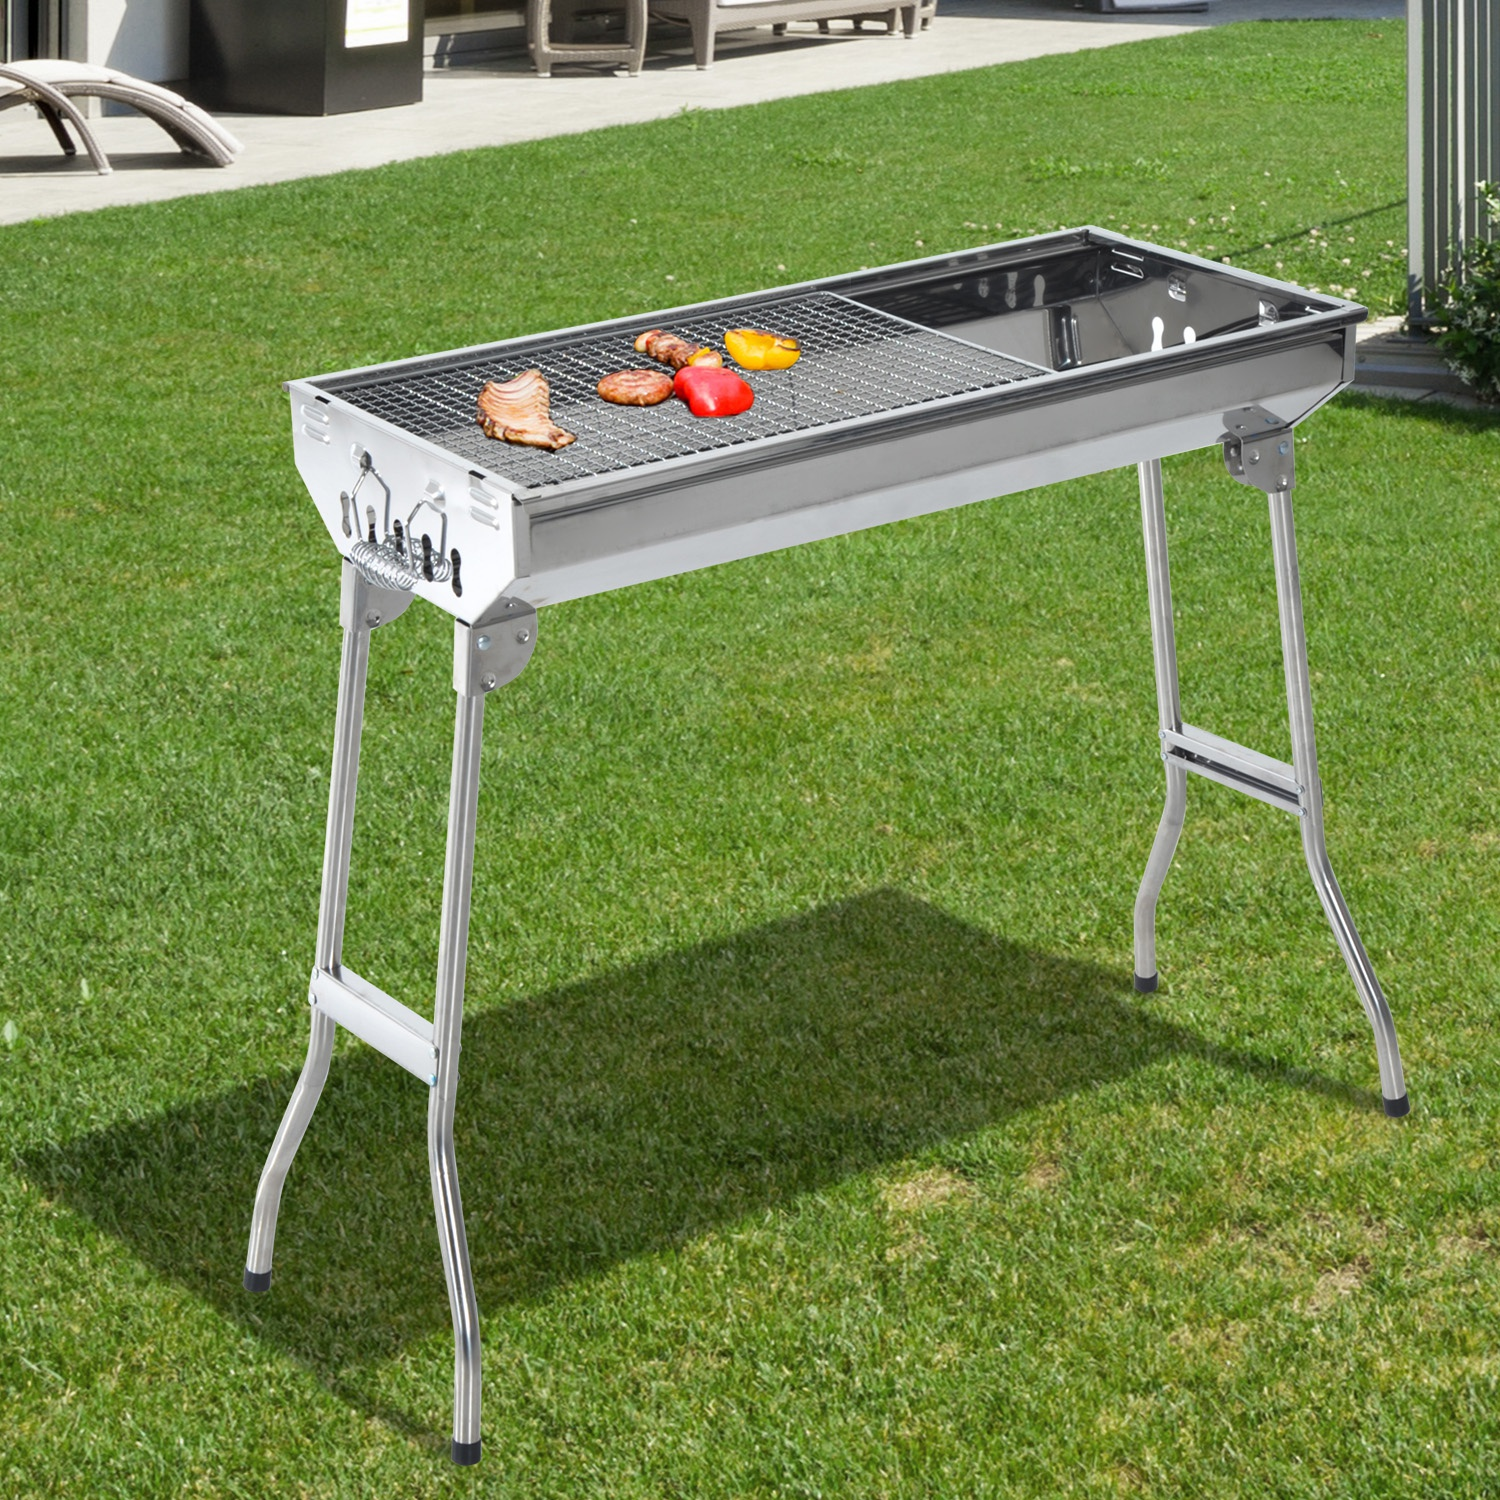 Outsunny Portable Charcoal BBQ Grill Stainless Steel,73Lx33Wx71H cm-Silver